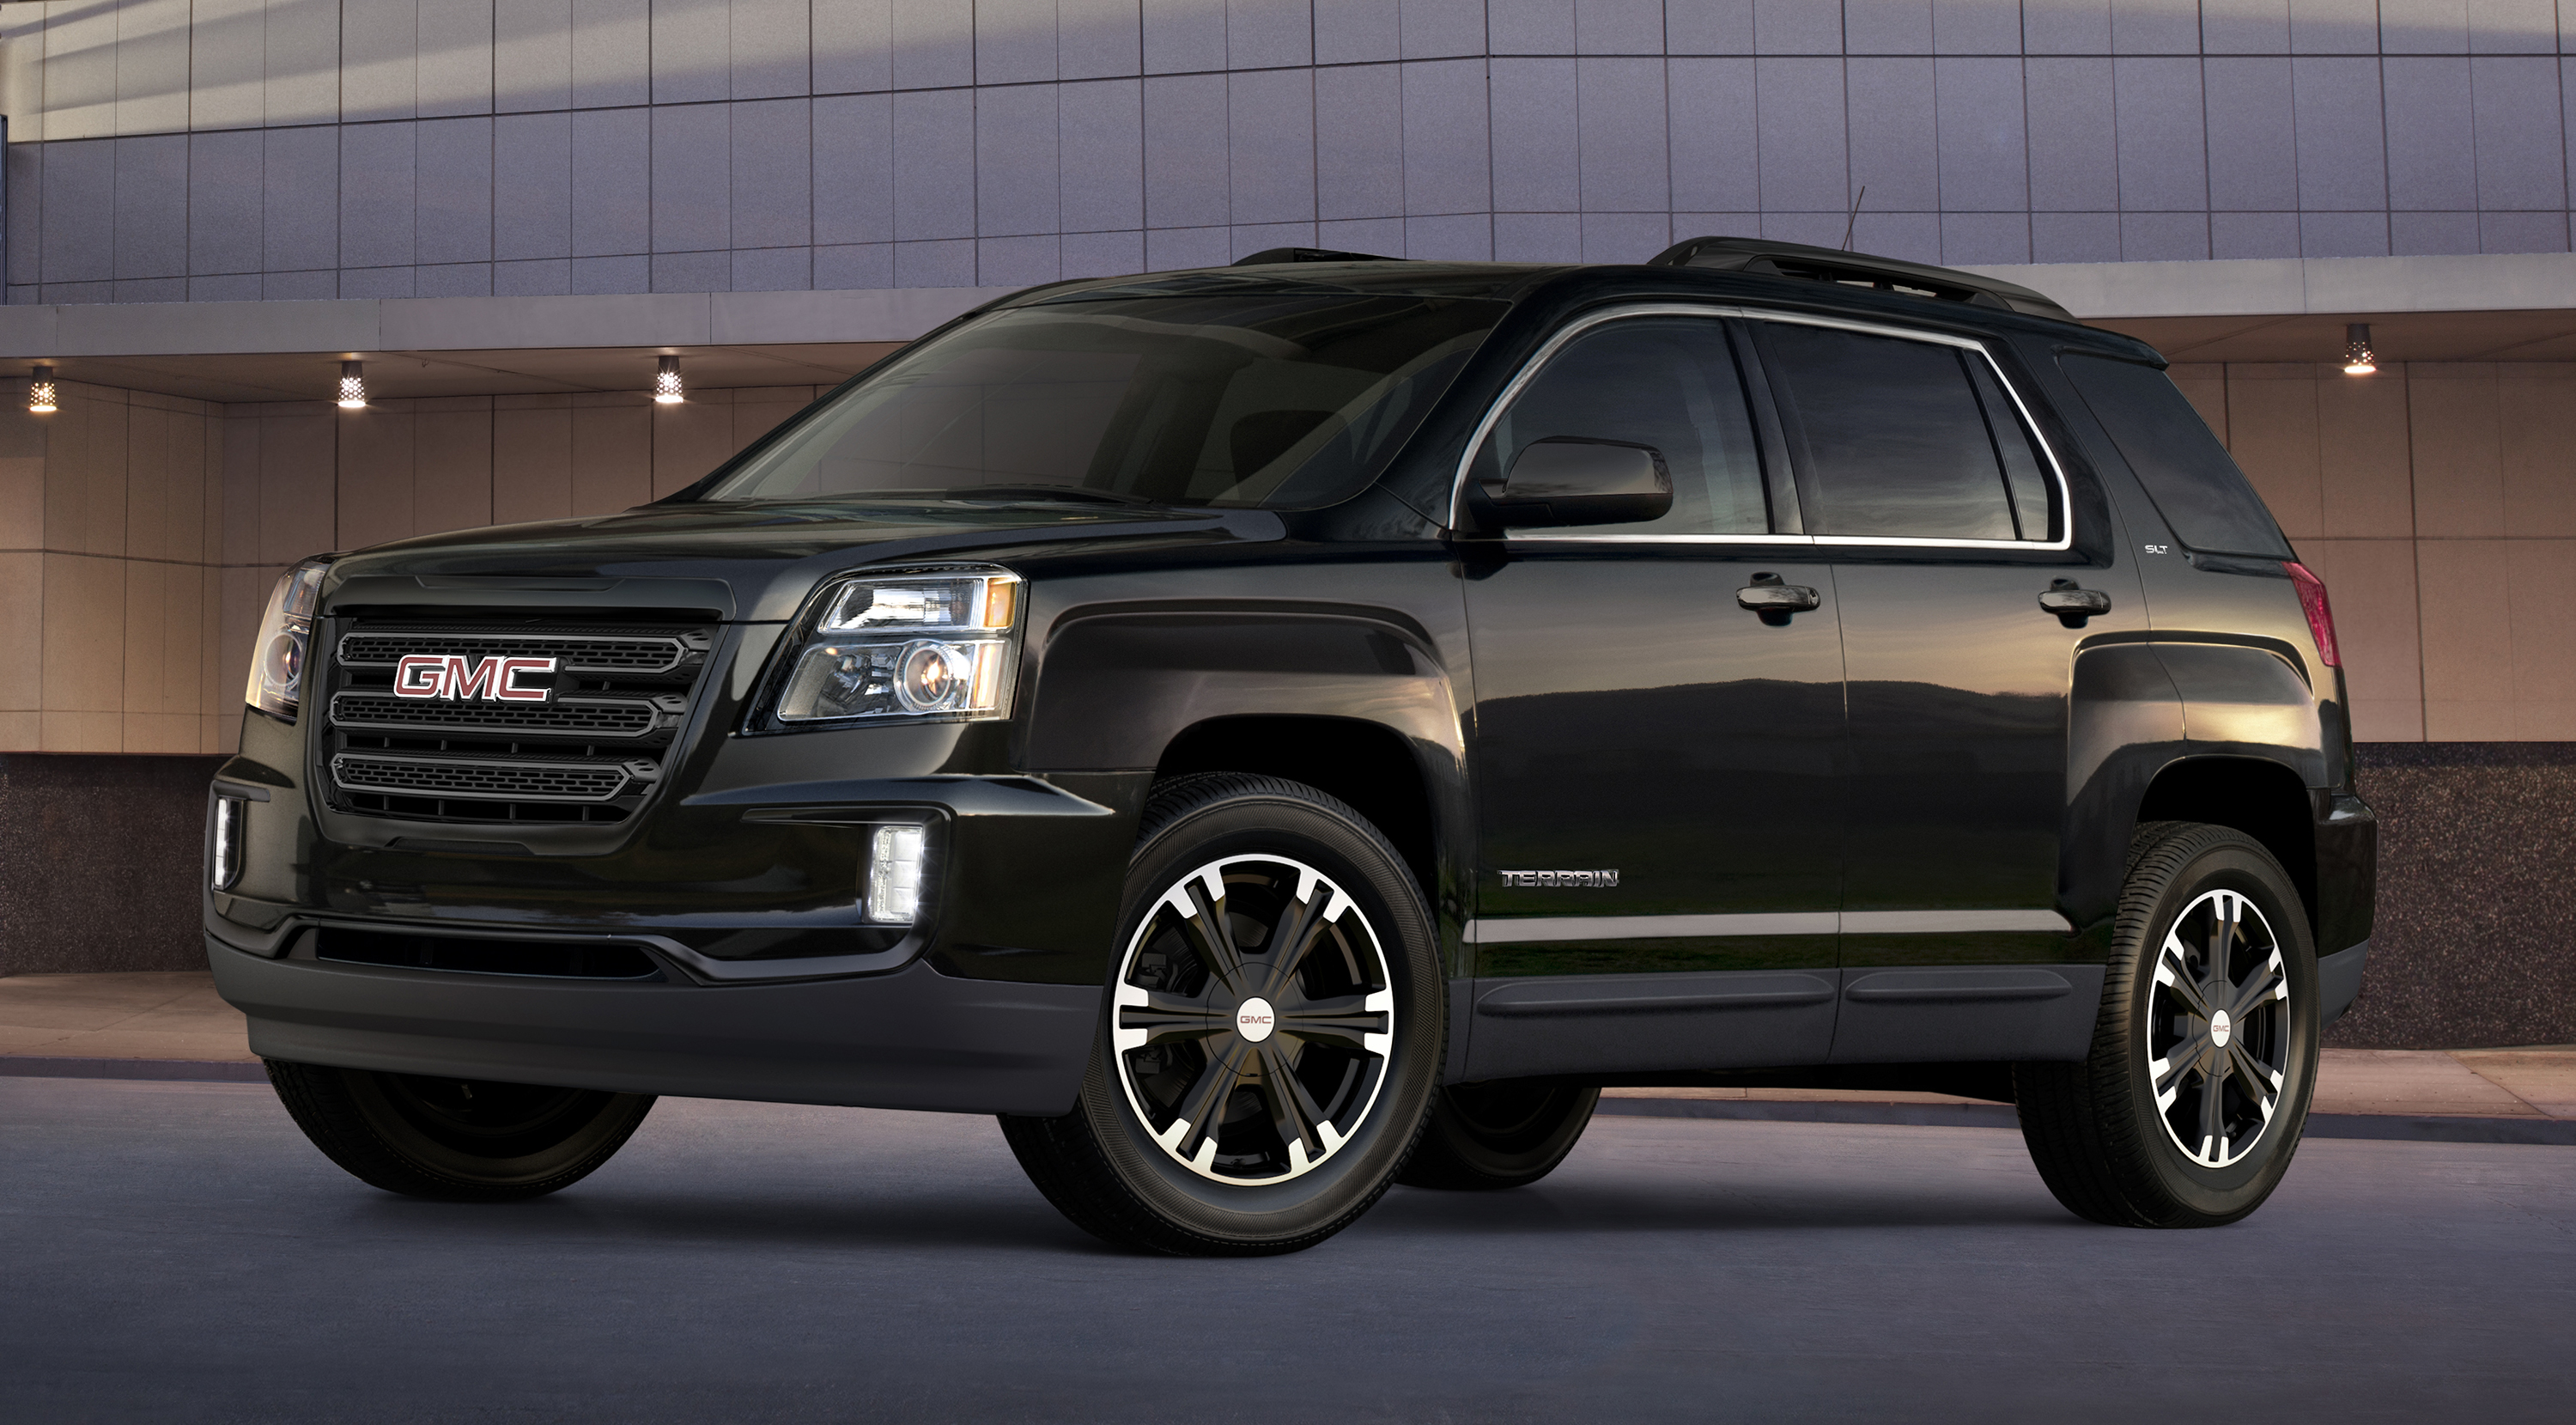 Wipeout Government Agency Investigating Gm Windshield Wiper Recall